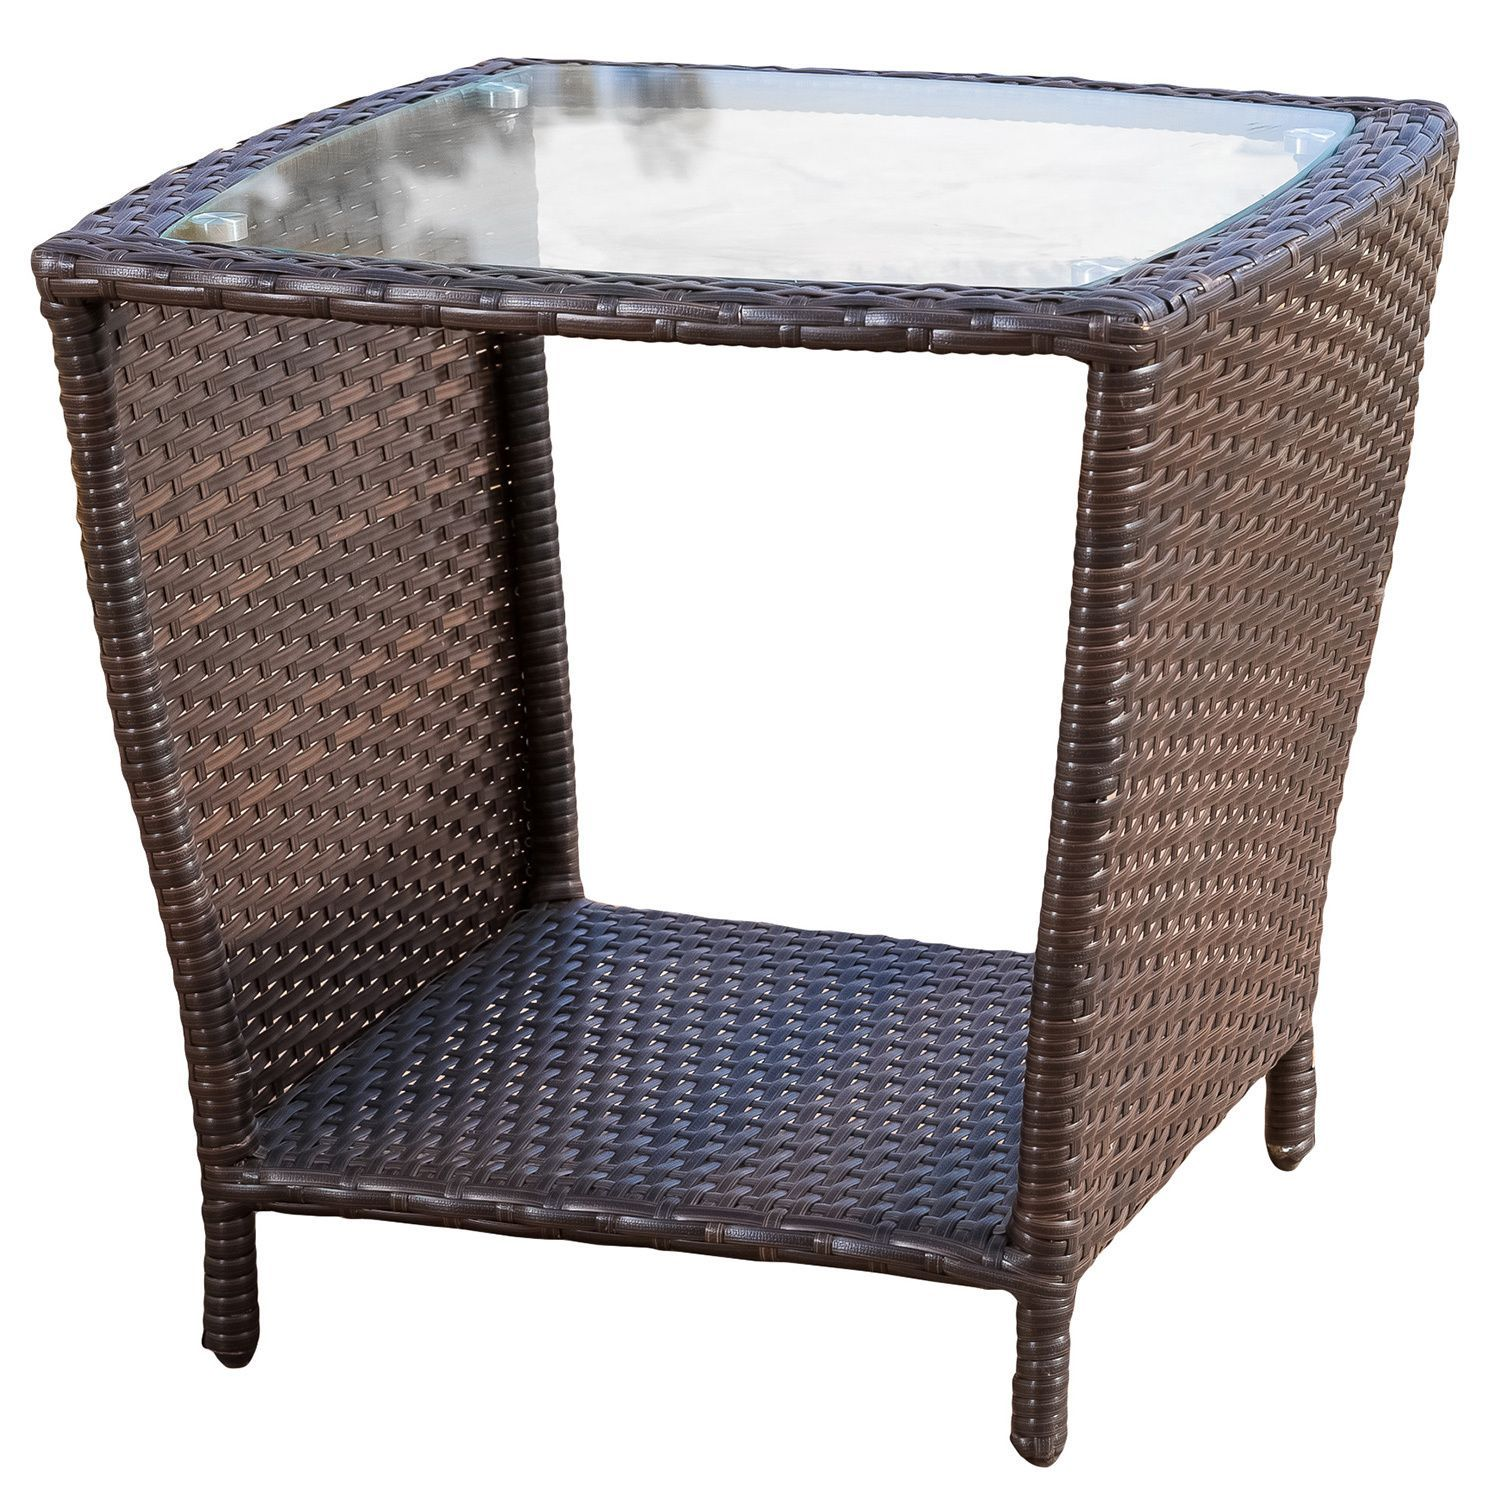 weston outdoor wicker side table with glass top christopher knight home patio furniture xmas tablecloth bar height legs wood narrow telephone quilt runner patterns dorm room